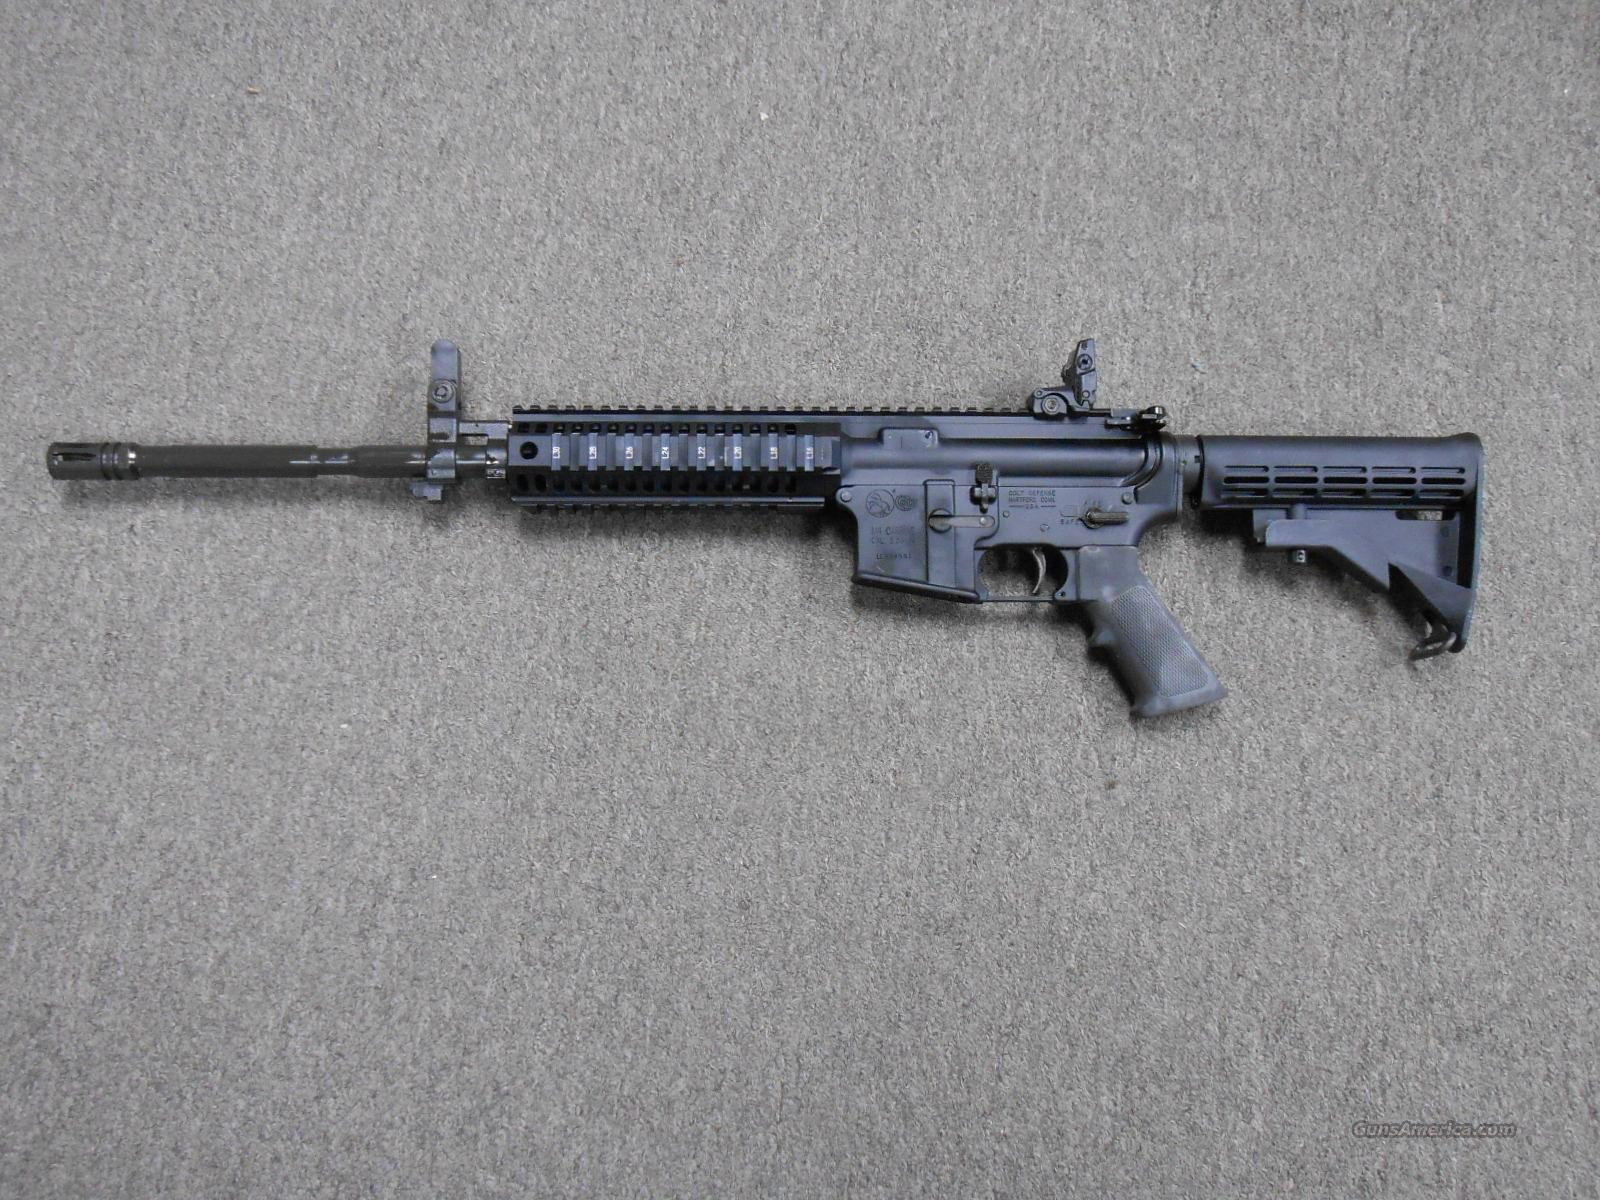 Colt LE6940 AR15 5.56 Blk NIB! No CC Fees!   Guns > Rifles > Colt Military/Tactical Rifles